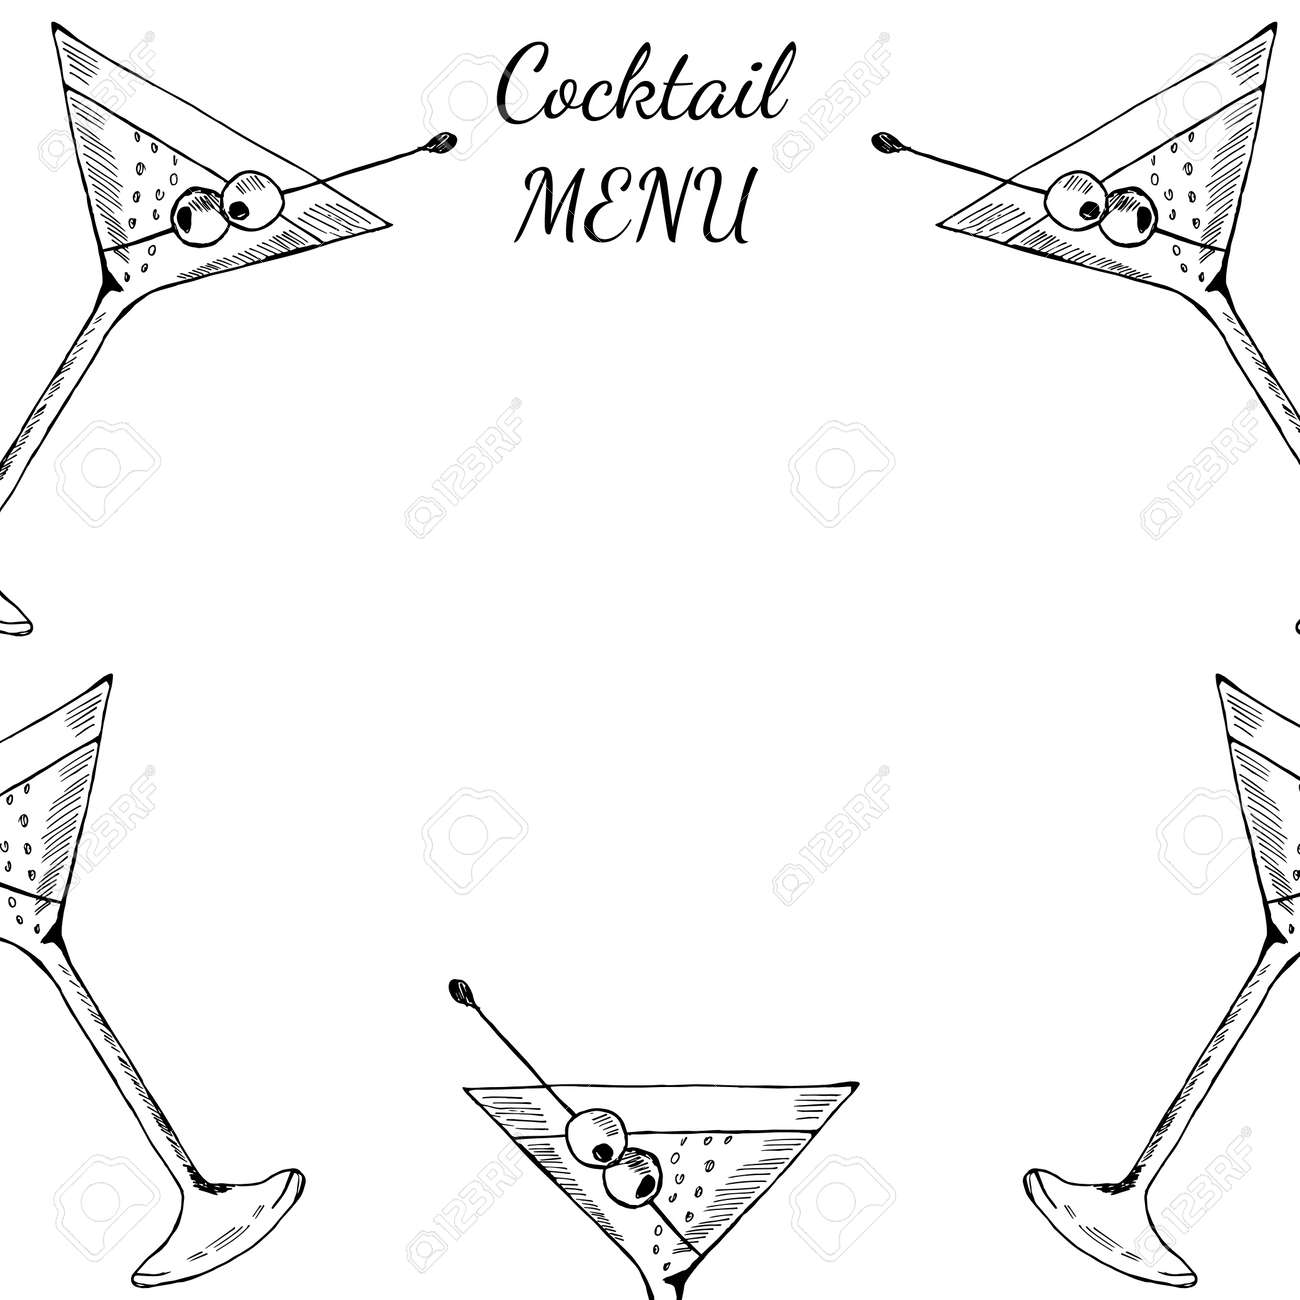 cocktails menu card design template menu blank with space for text for restaurant cafe